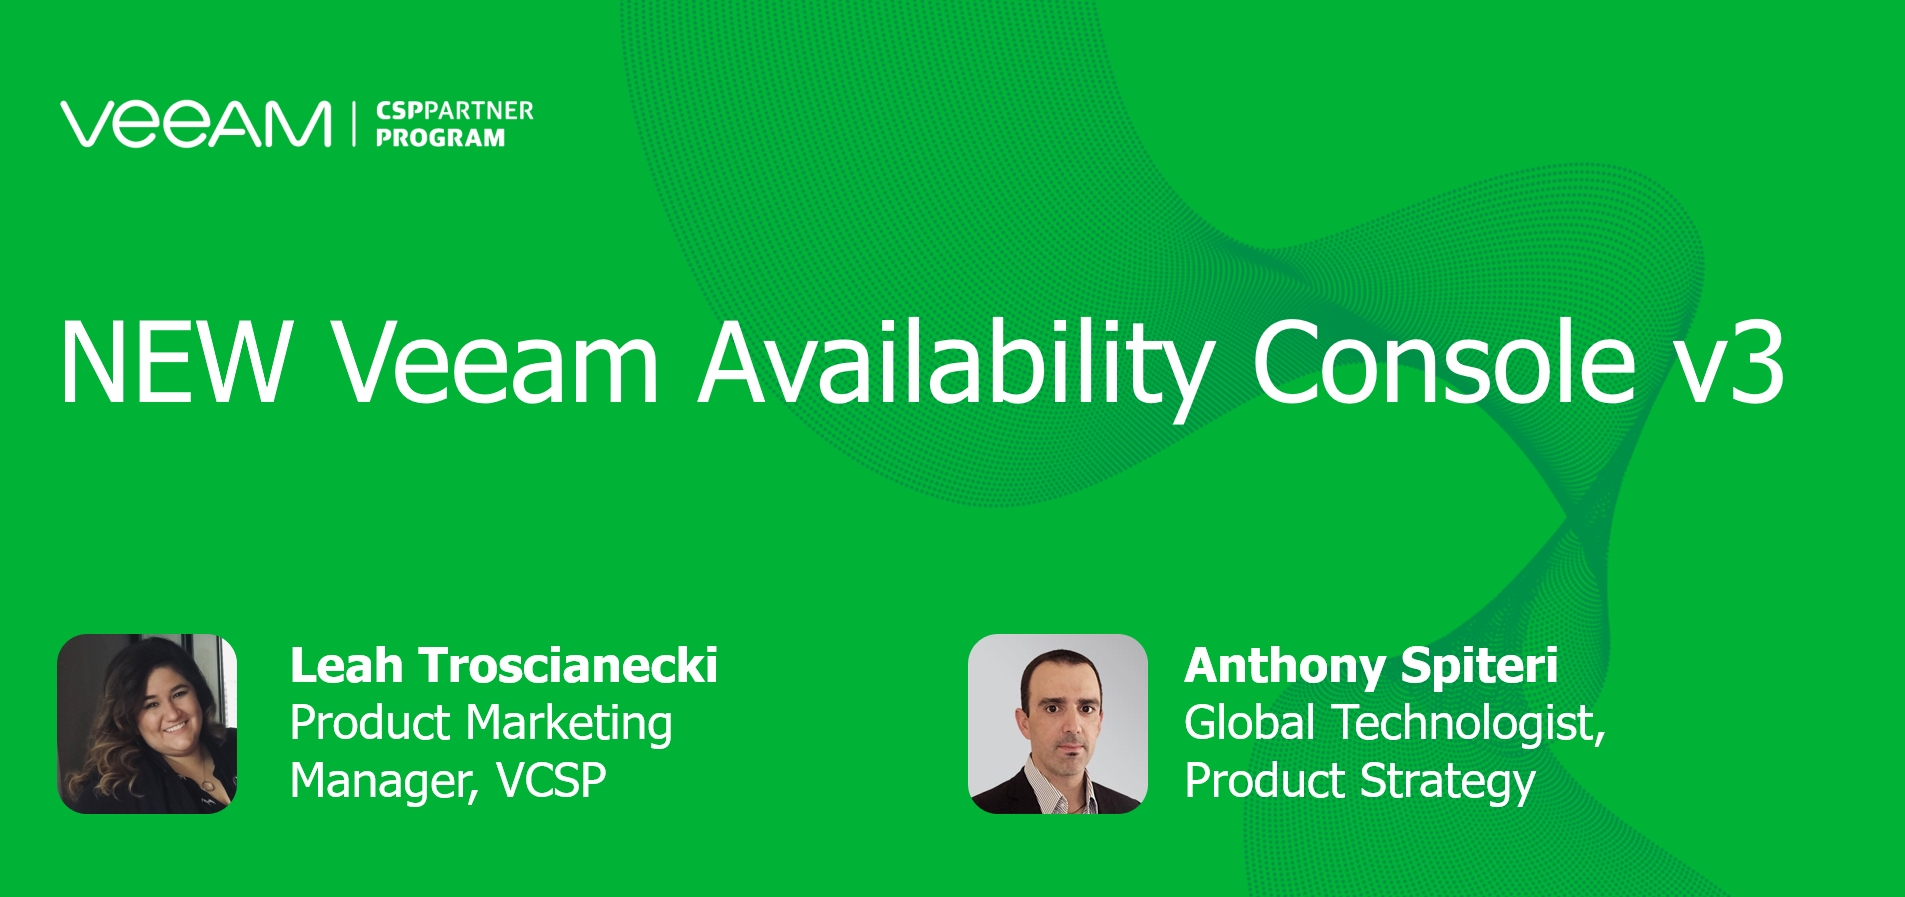 NEW Veeam Availability Console v3 Makes Service Delivery Simple